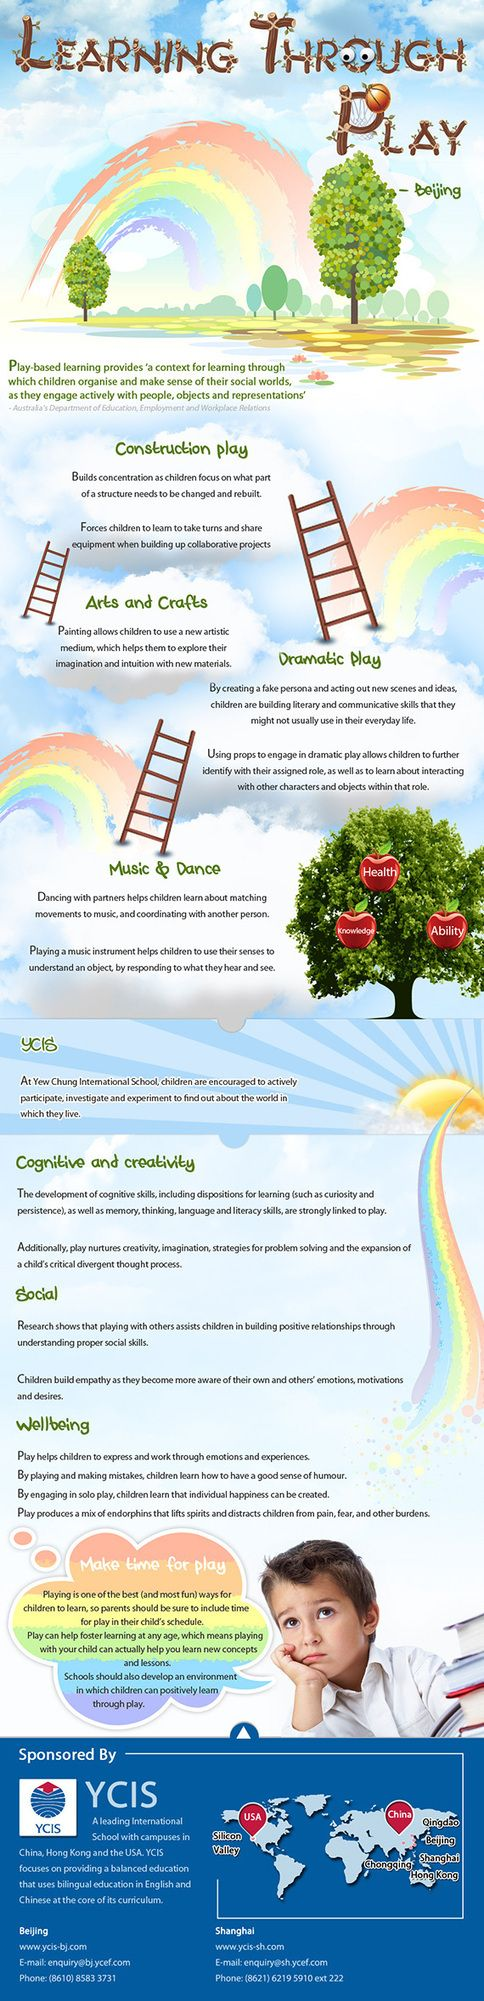 Learning Through Play Infographic 14 best The